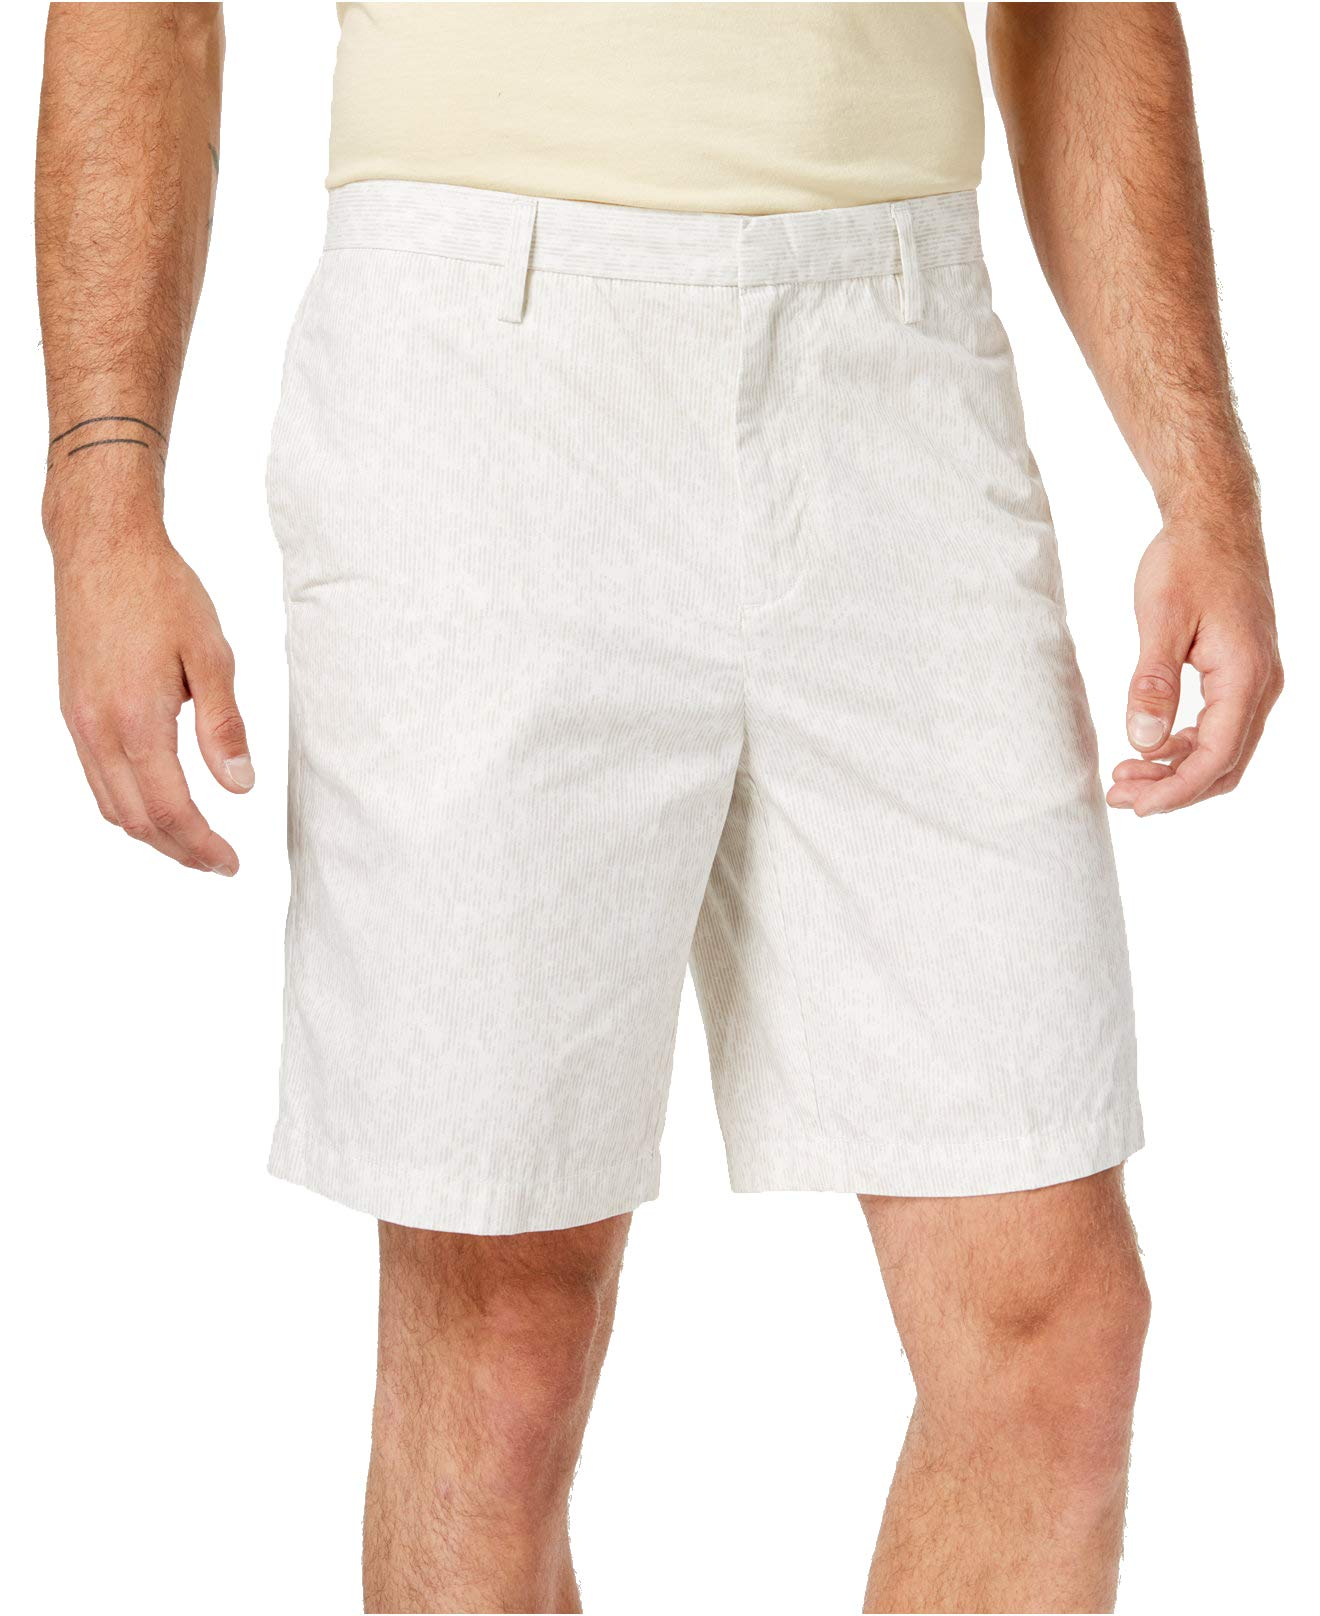 New-DKNY-NEW-Ivory-Mens-Size-38-Light-Stripe-Print-Relaxed-Chinos-Shorts-69-320